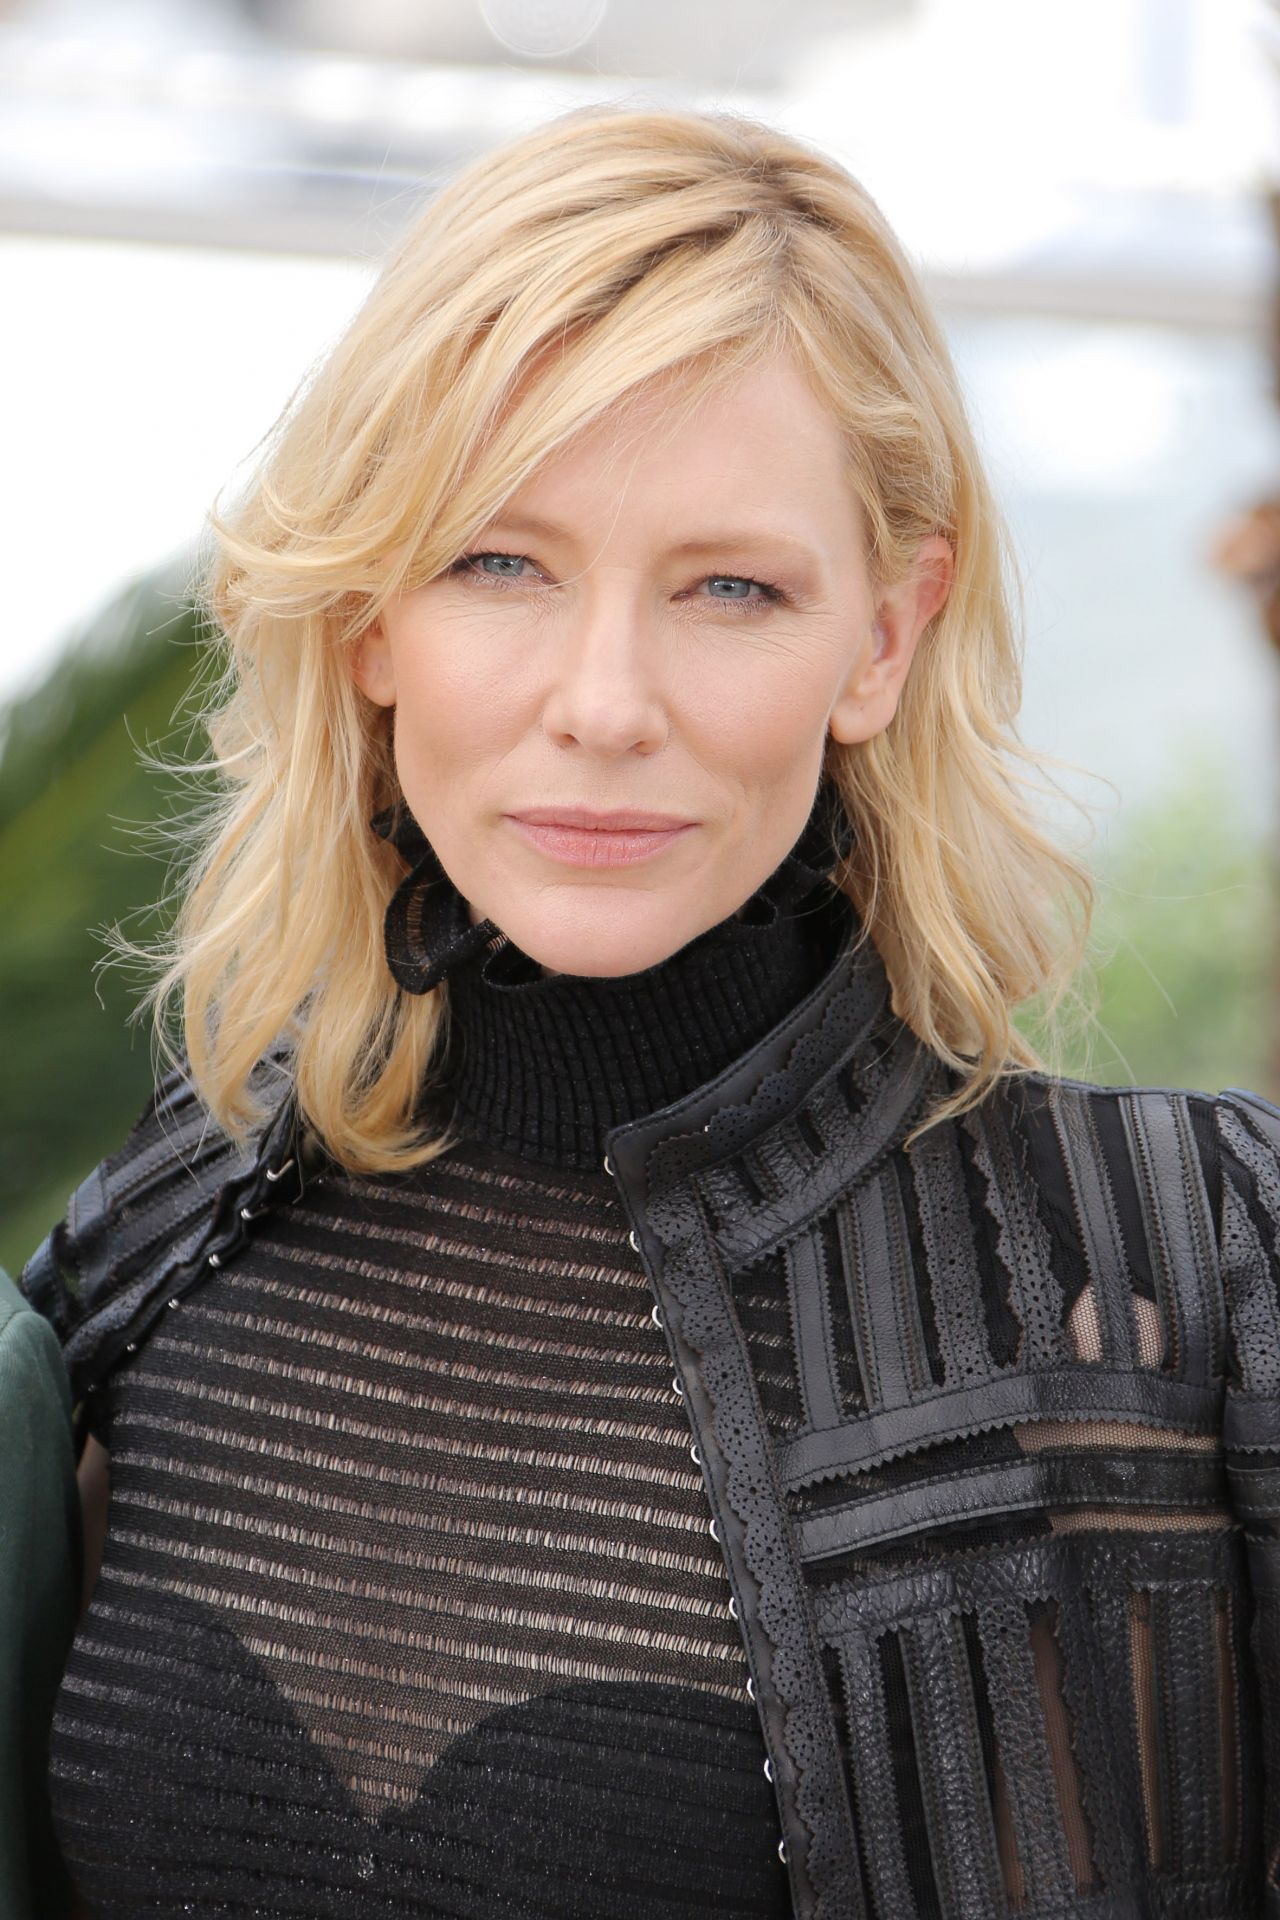 Cate Blanchett - Carol Photocall in Cannes, France, May 2015 Cate Blanchett